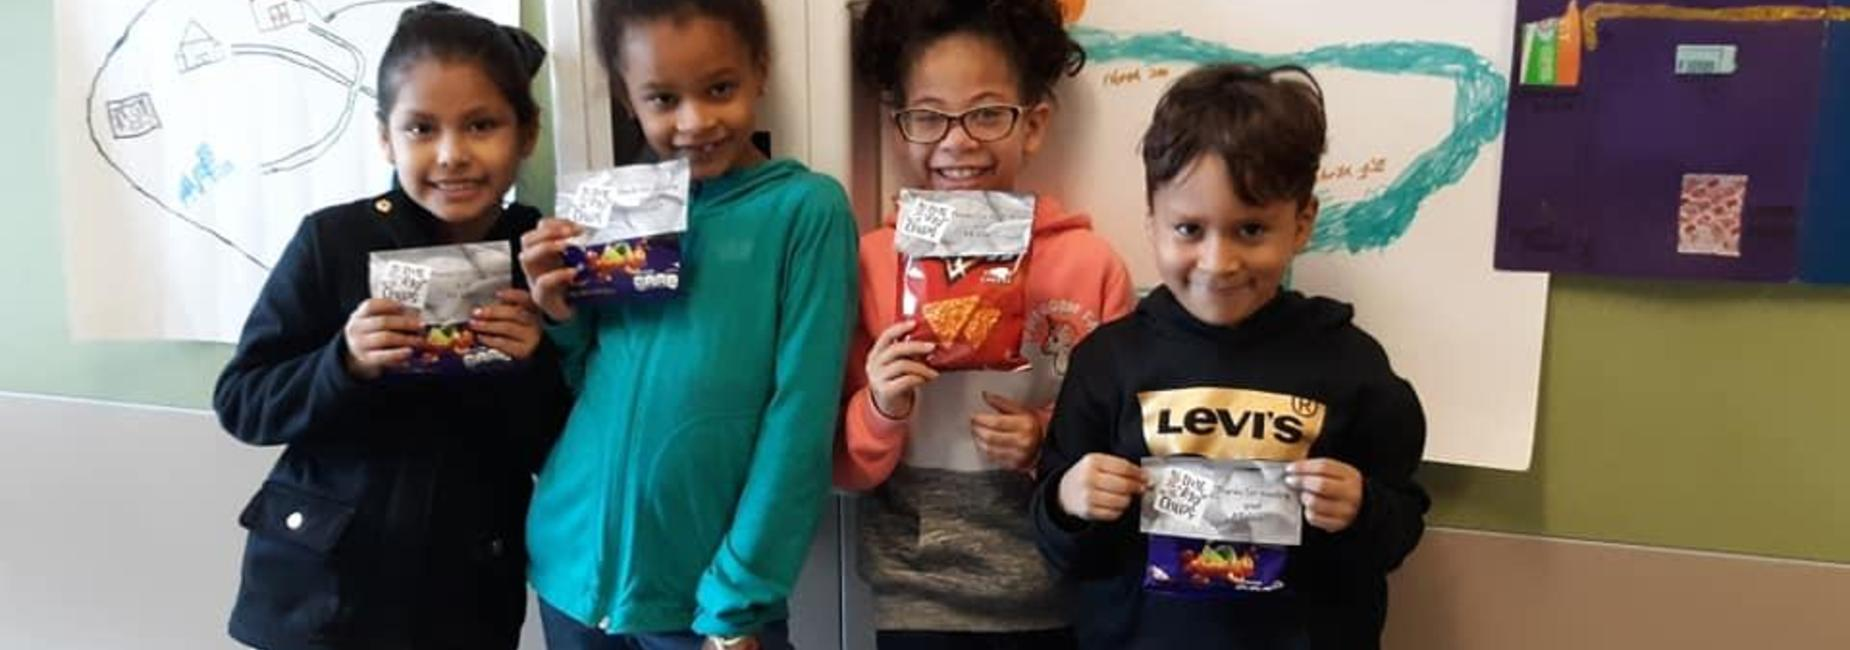 kids with chip bags for reading